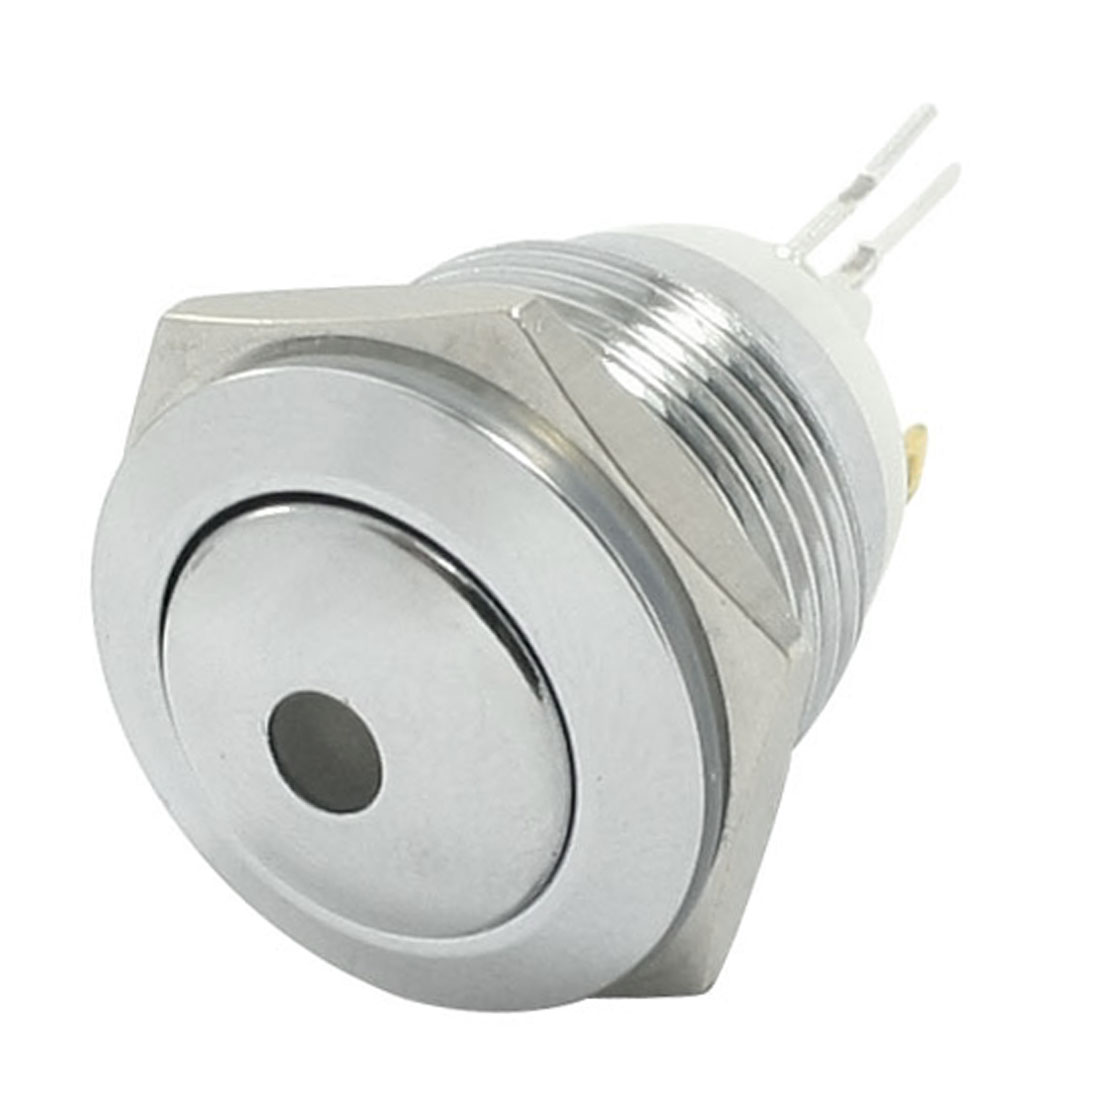 24V Green LED Lamp SPST Latching Car Stainless Steel Push Button Switch 16mm